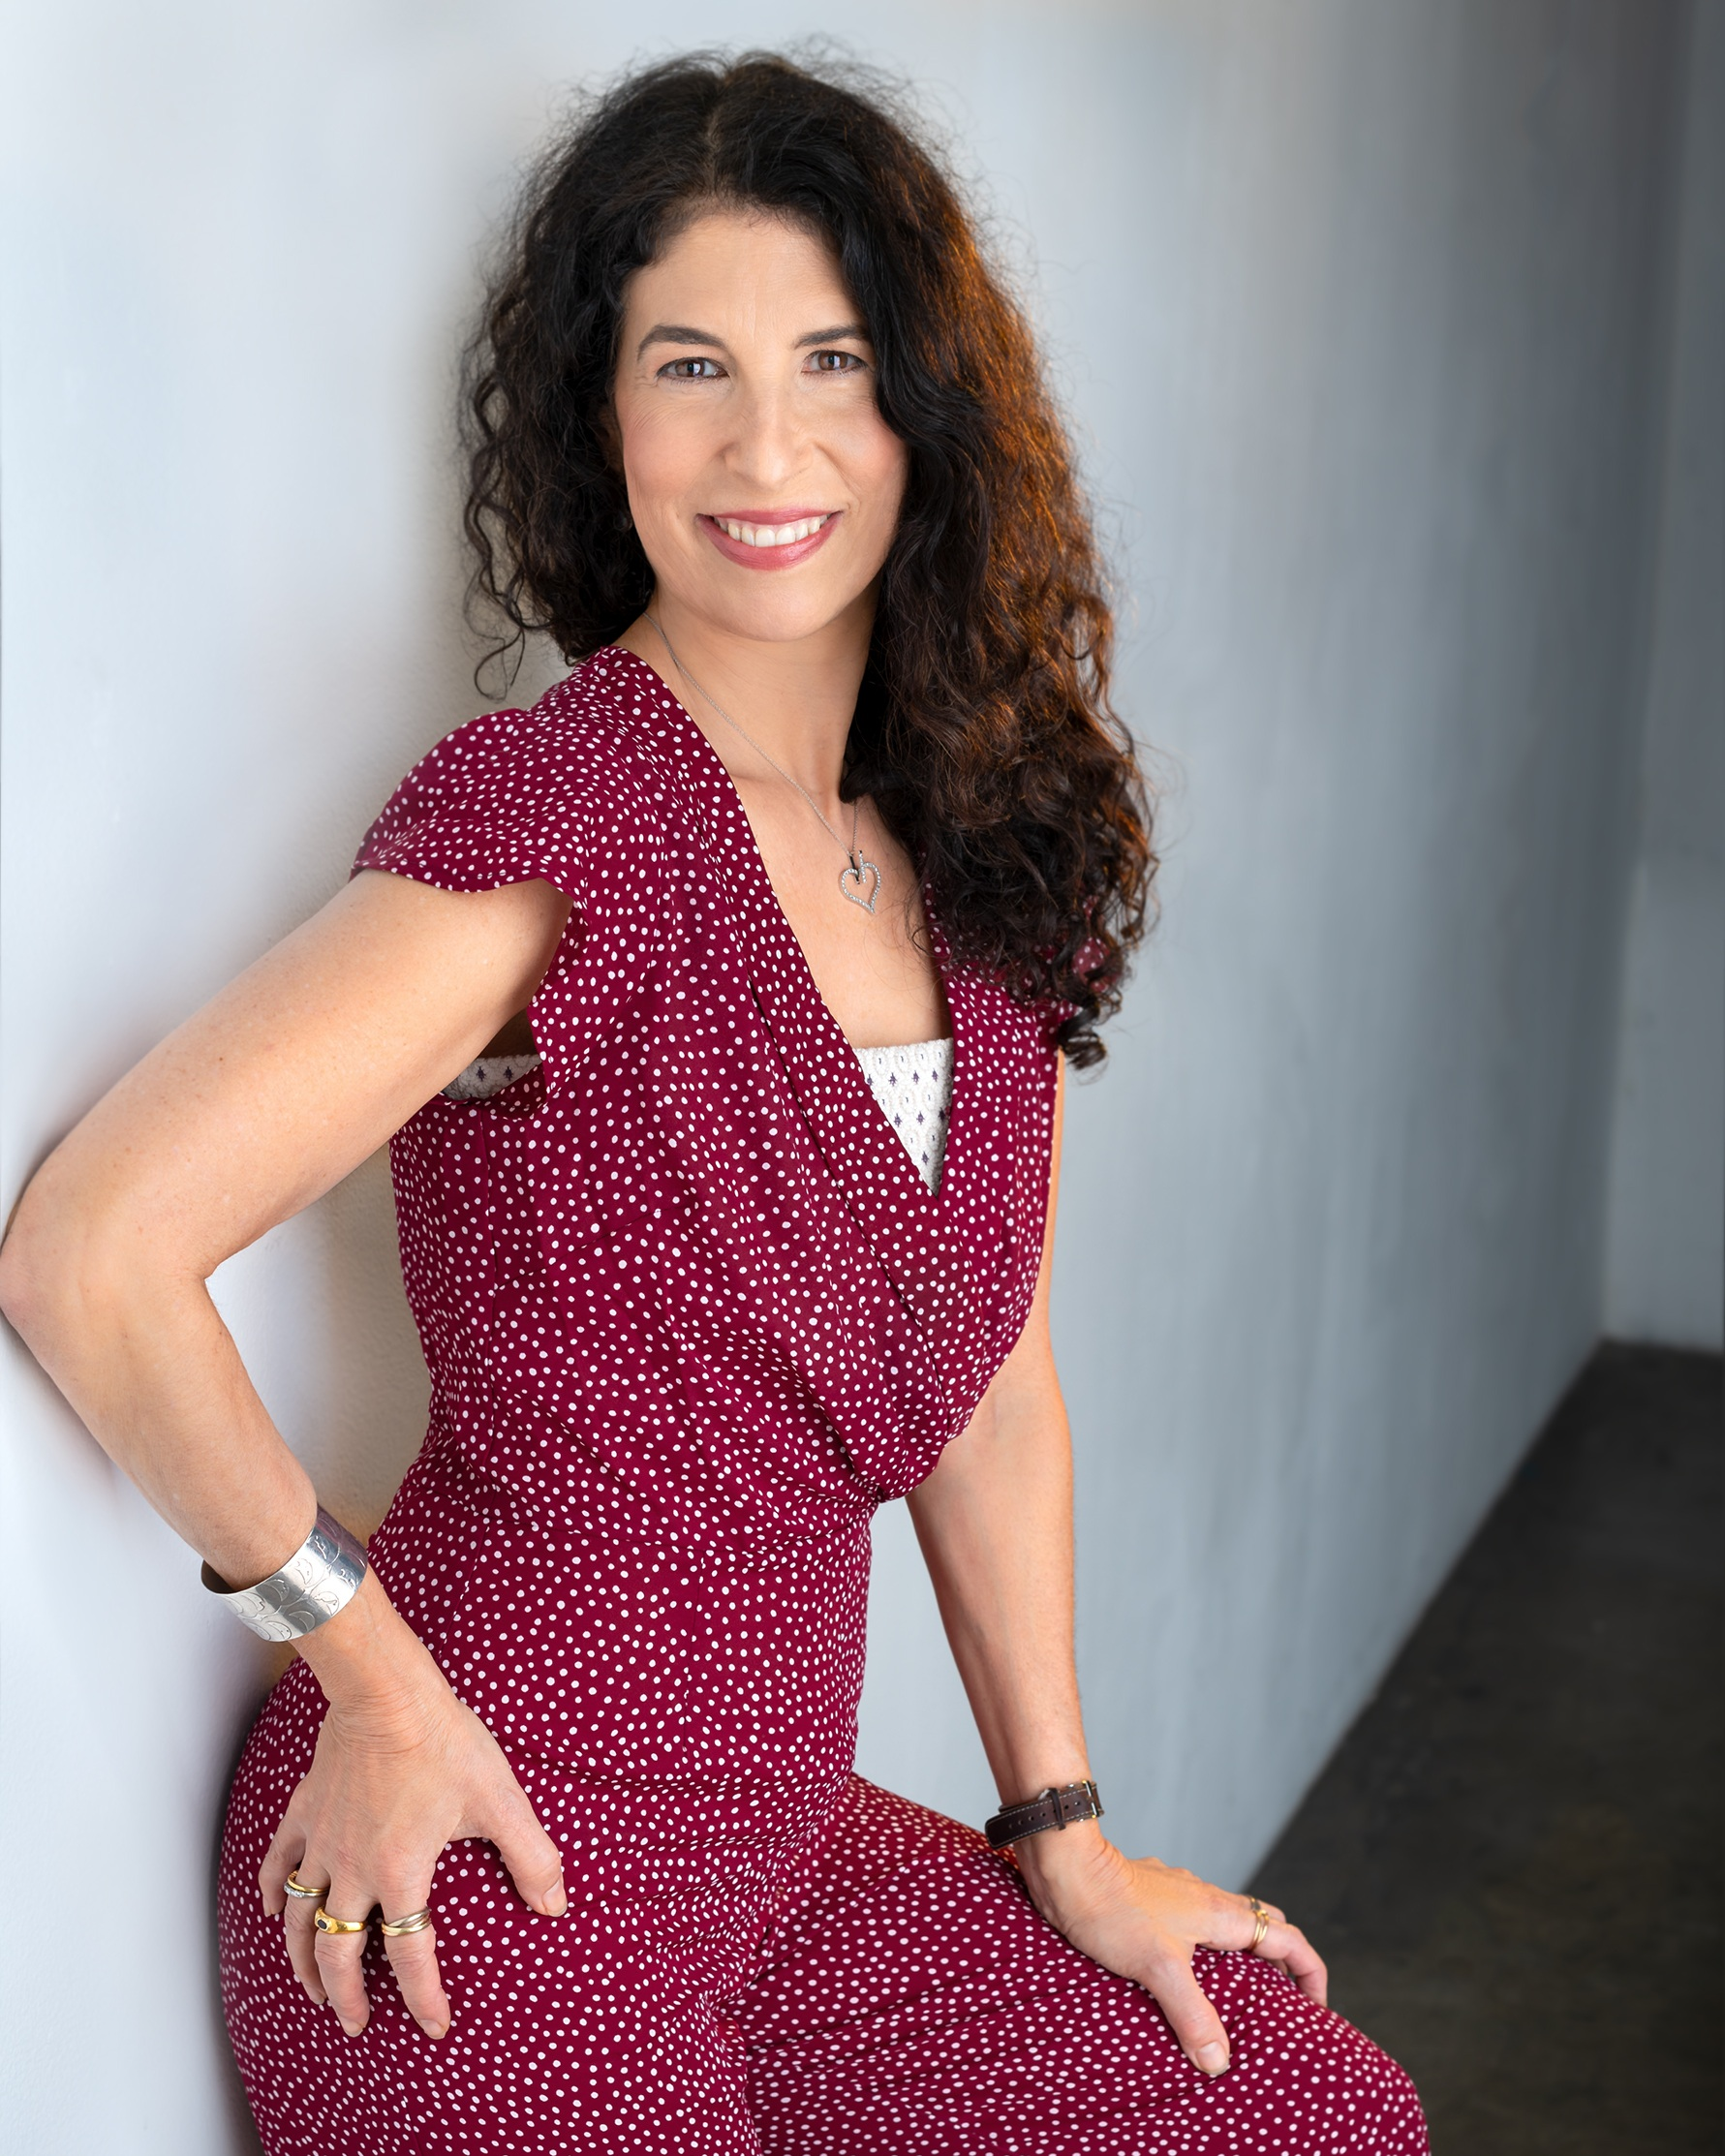 Denise Weisner, author and fertility expert, leaning up against a wall wearing a red jumper